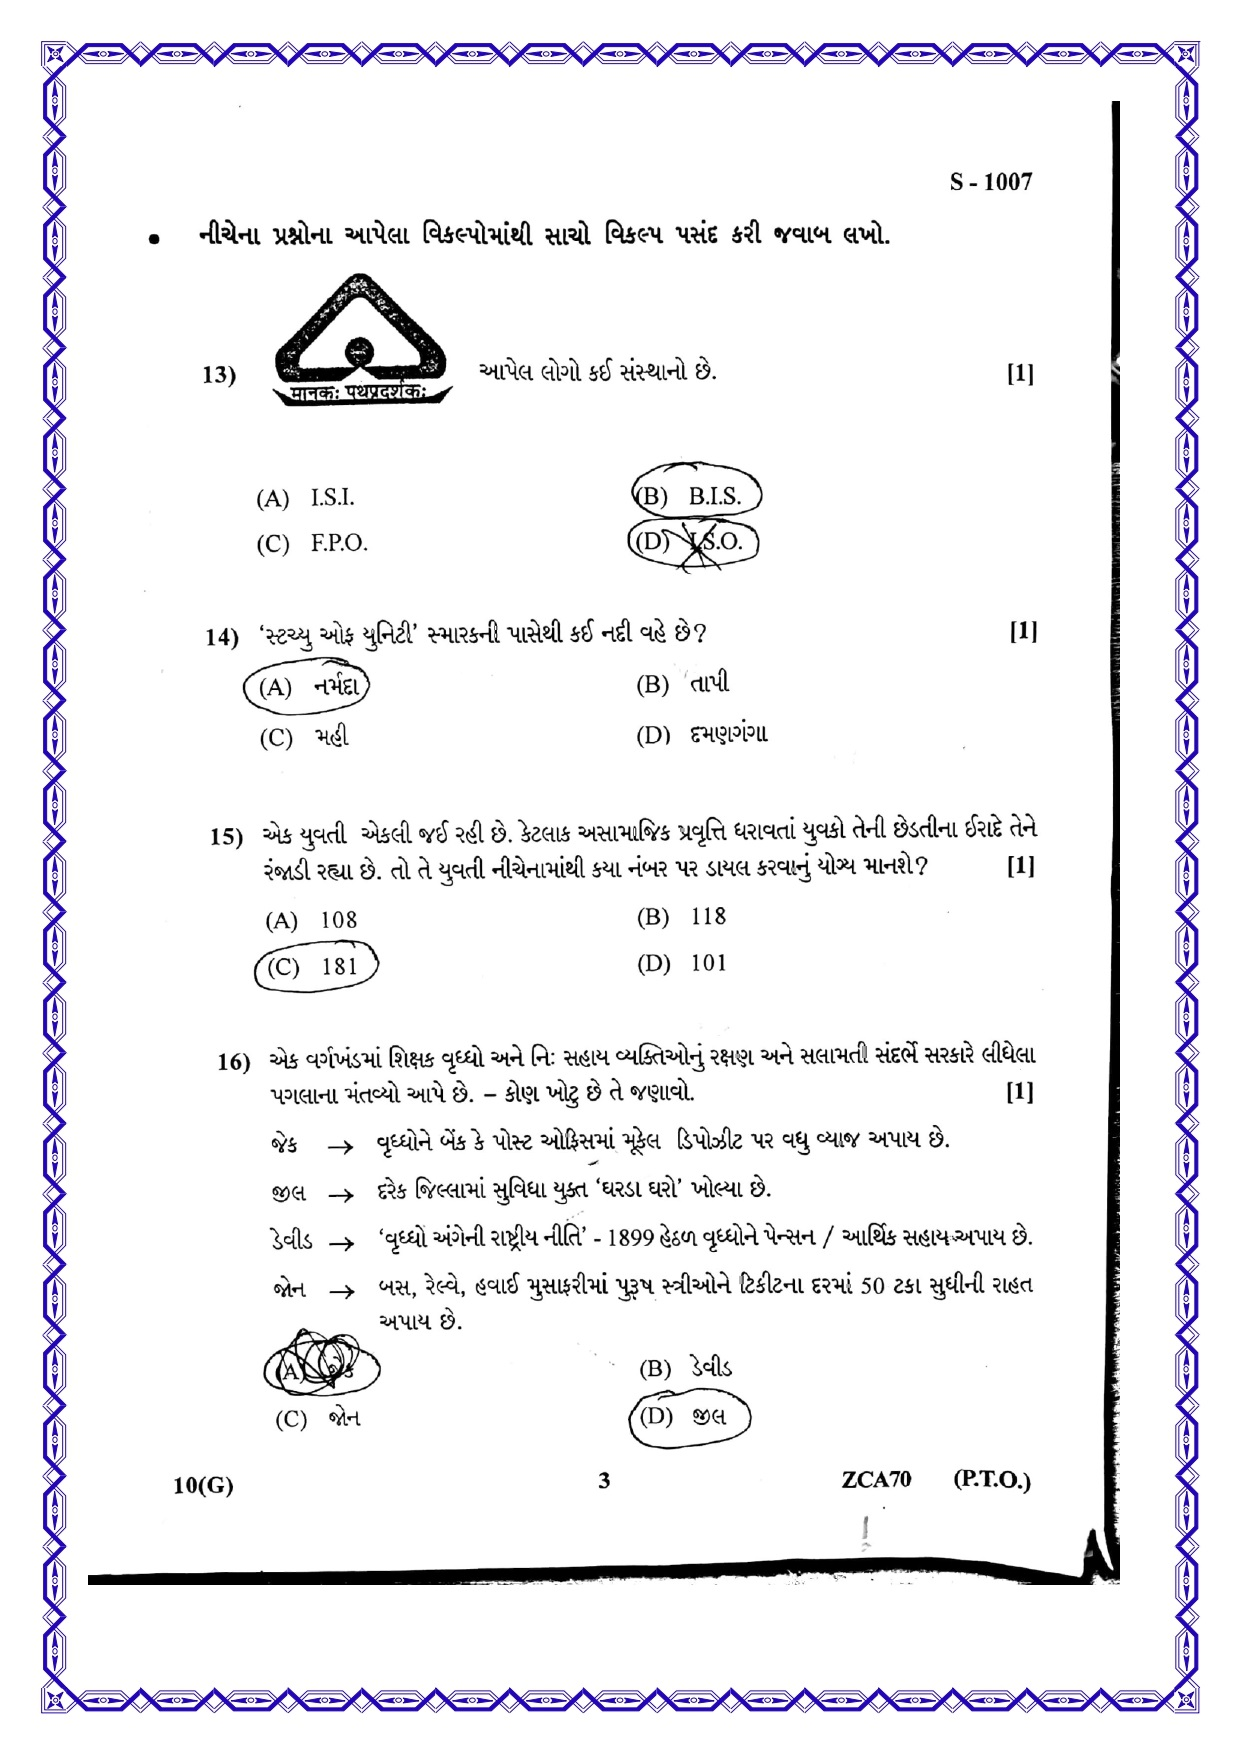 Today's GSEB 10th SSC Social Science Answer key : Samajik Vigyan Paper Solution 2020 3